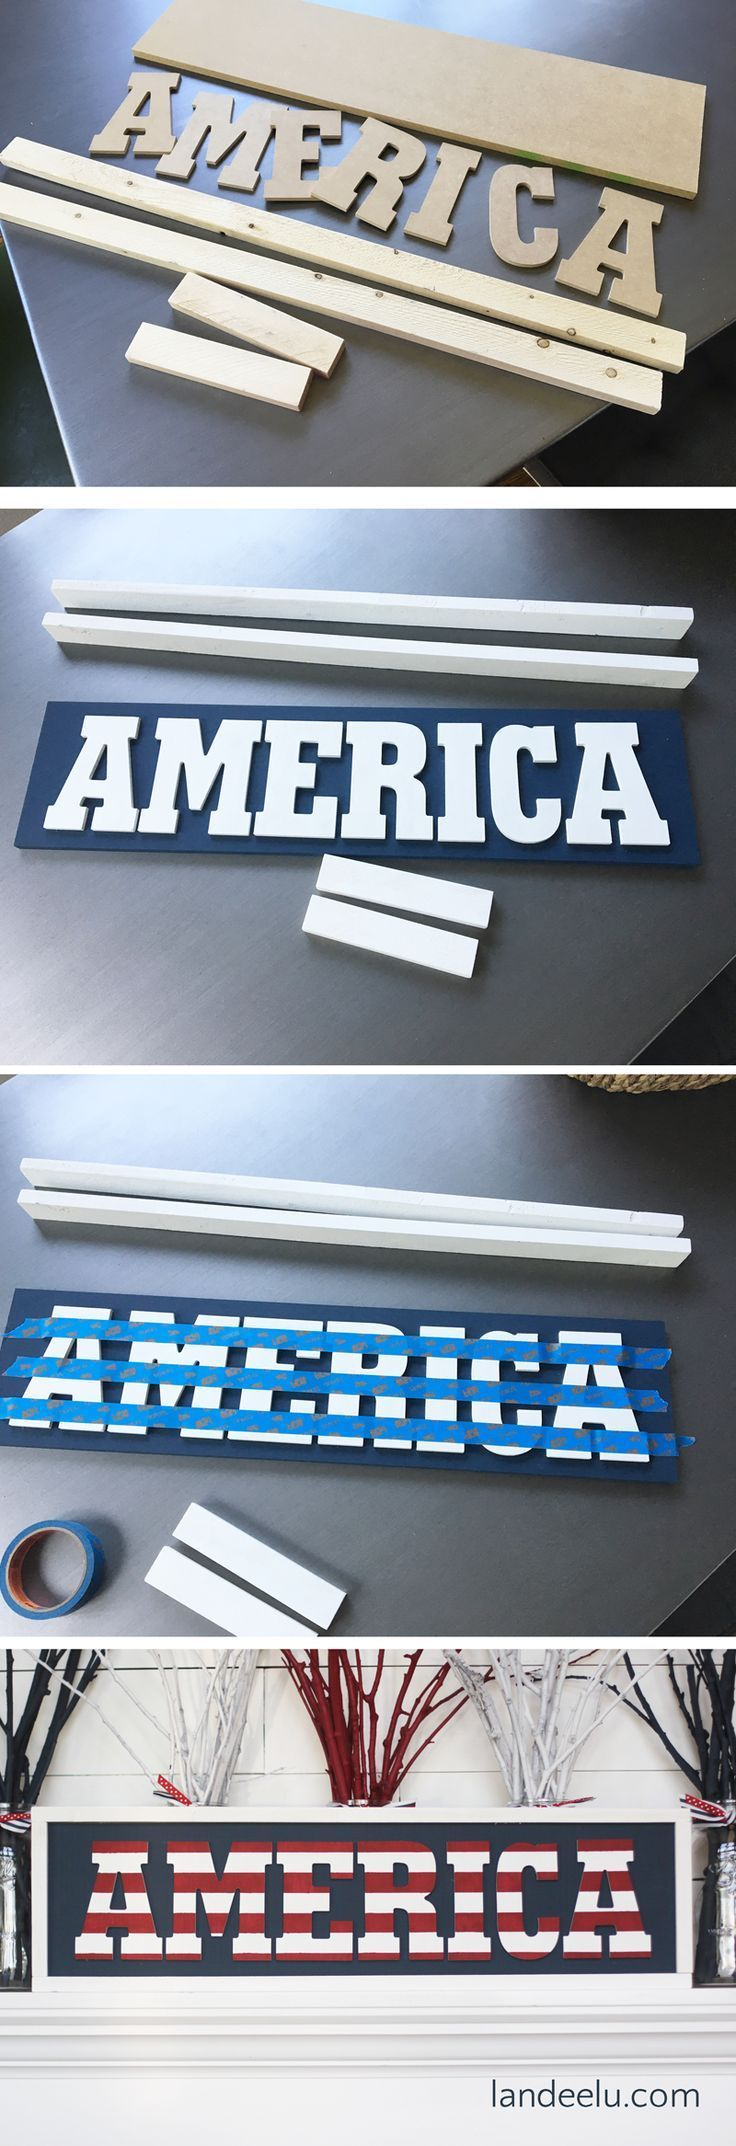 awesome DIY Independence Day America Sign - landeelu.com by http://www.danazhome-decorations.xyz/diy-crafts-home/diy-independence-day-america-sign-landeelu-com-2/